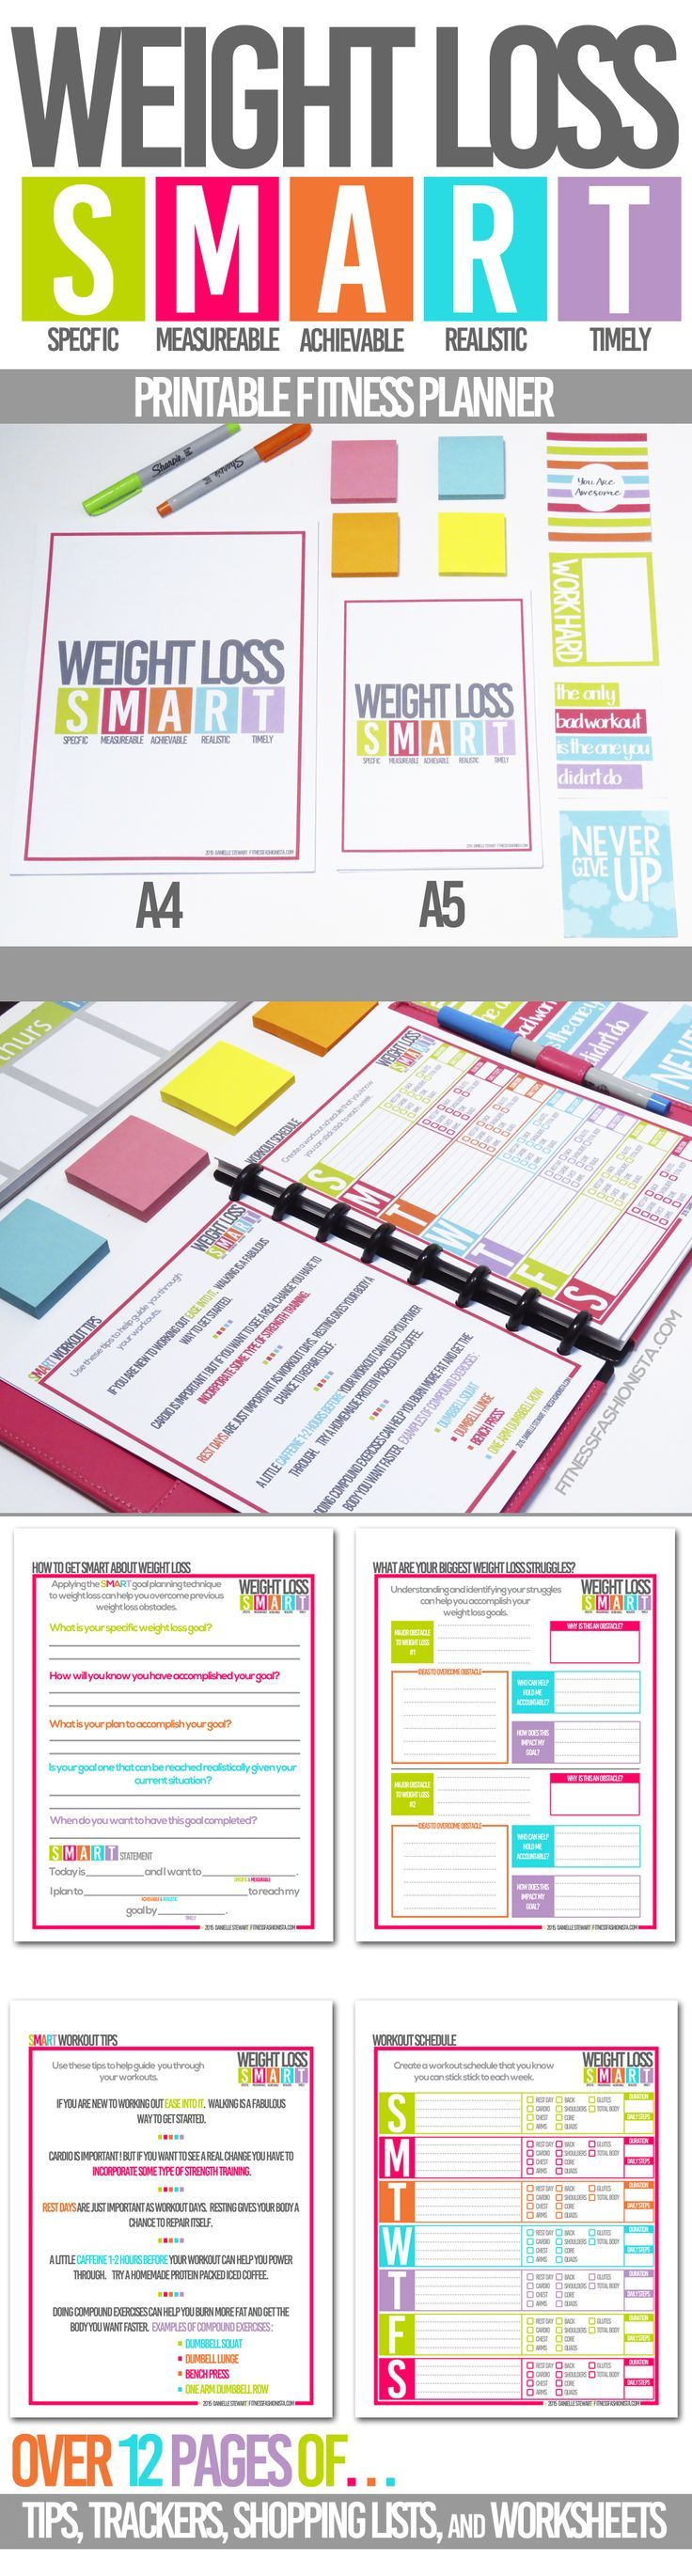 SMART Weight Loss printable Fitness Planner to help keep weight loss on track.